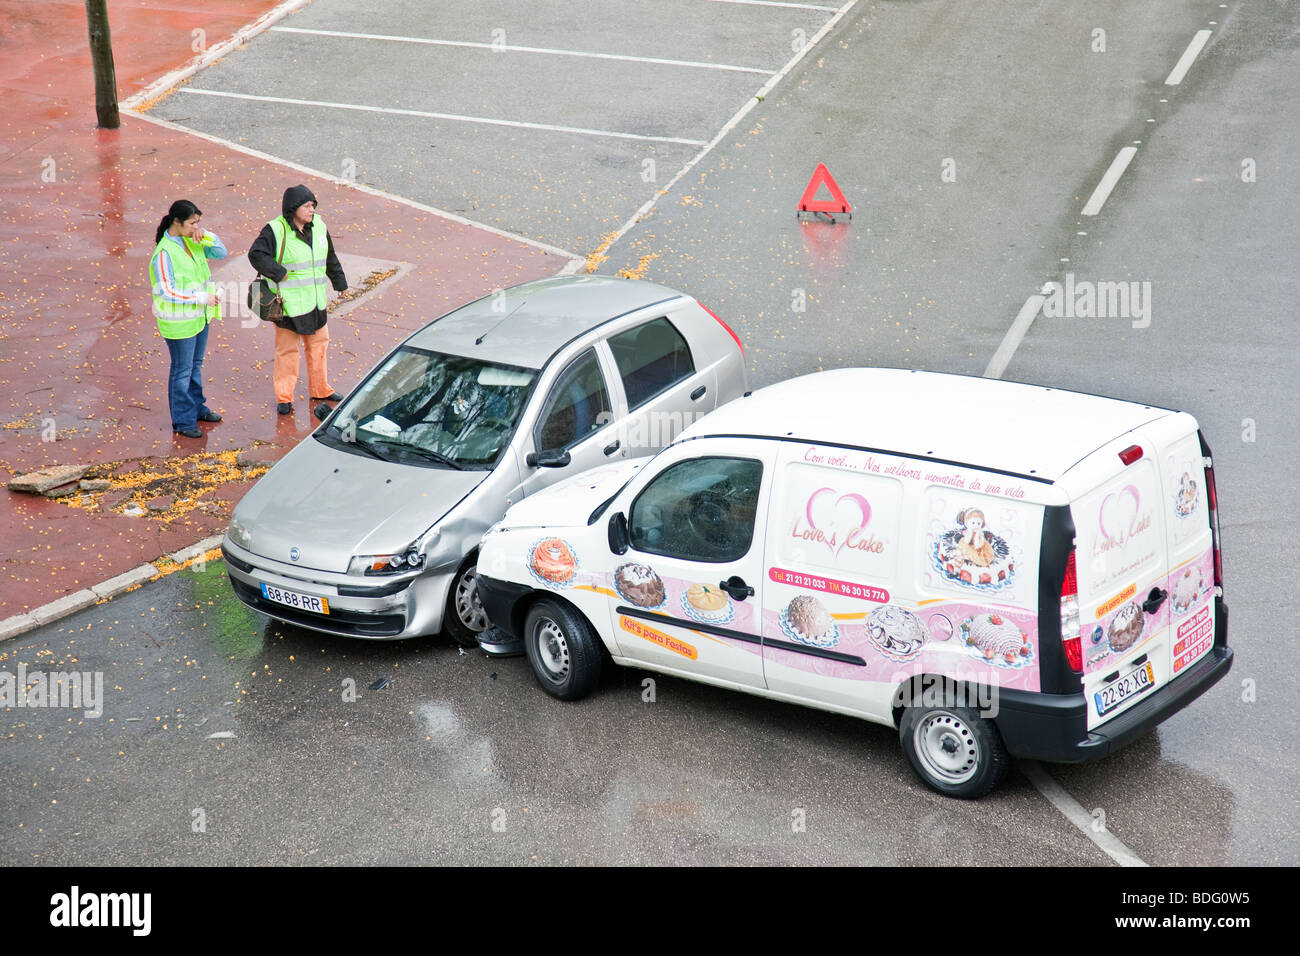 Two women (drivers) wait for the police after a car accident on a rainy day due to excessive speed. - Stock Image